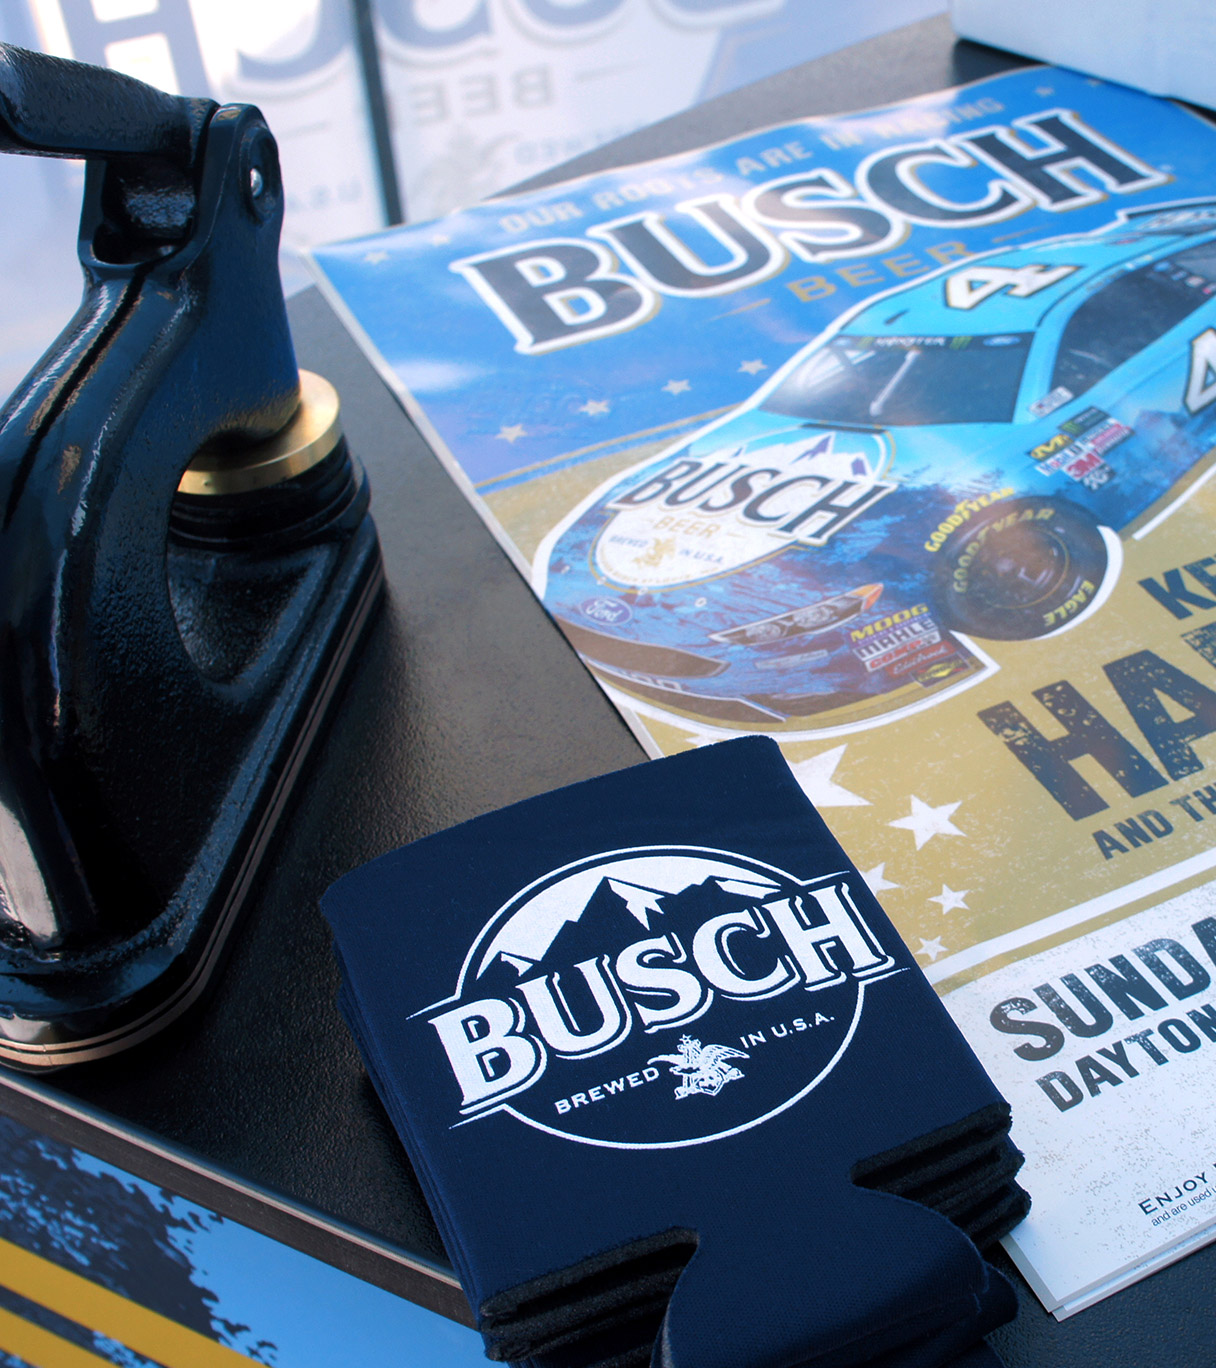 Busch beer coozie and poster